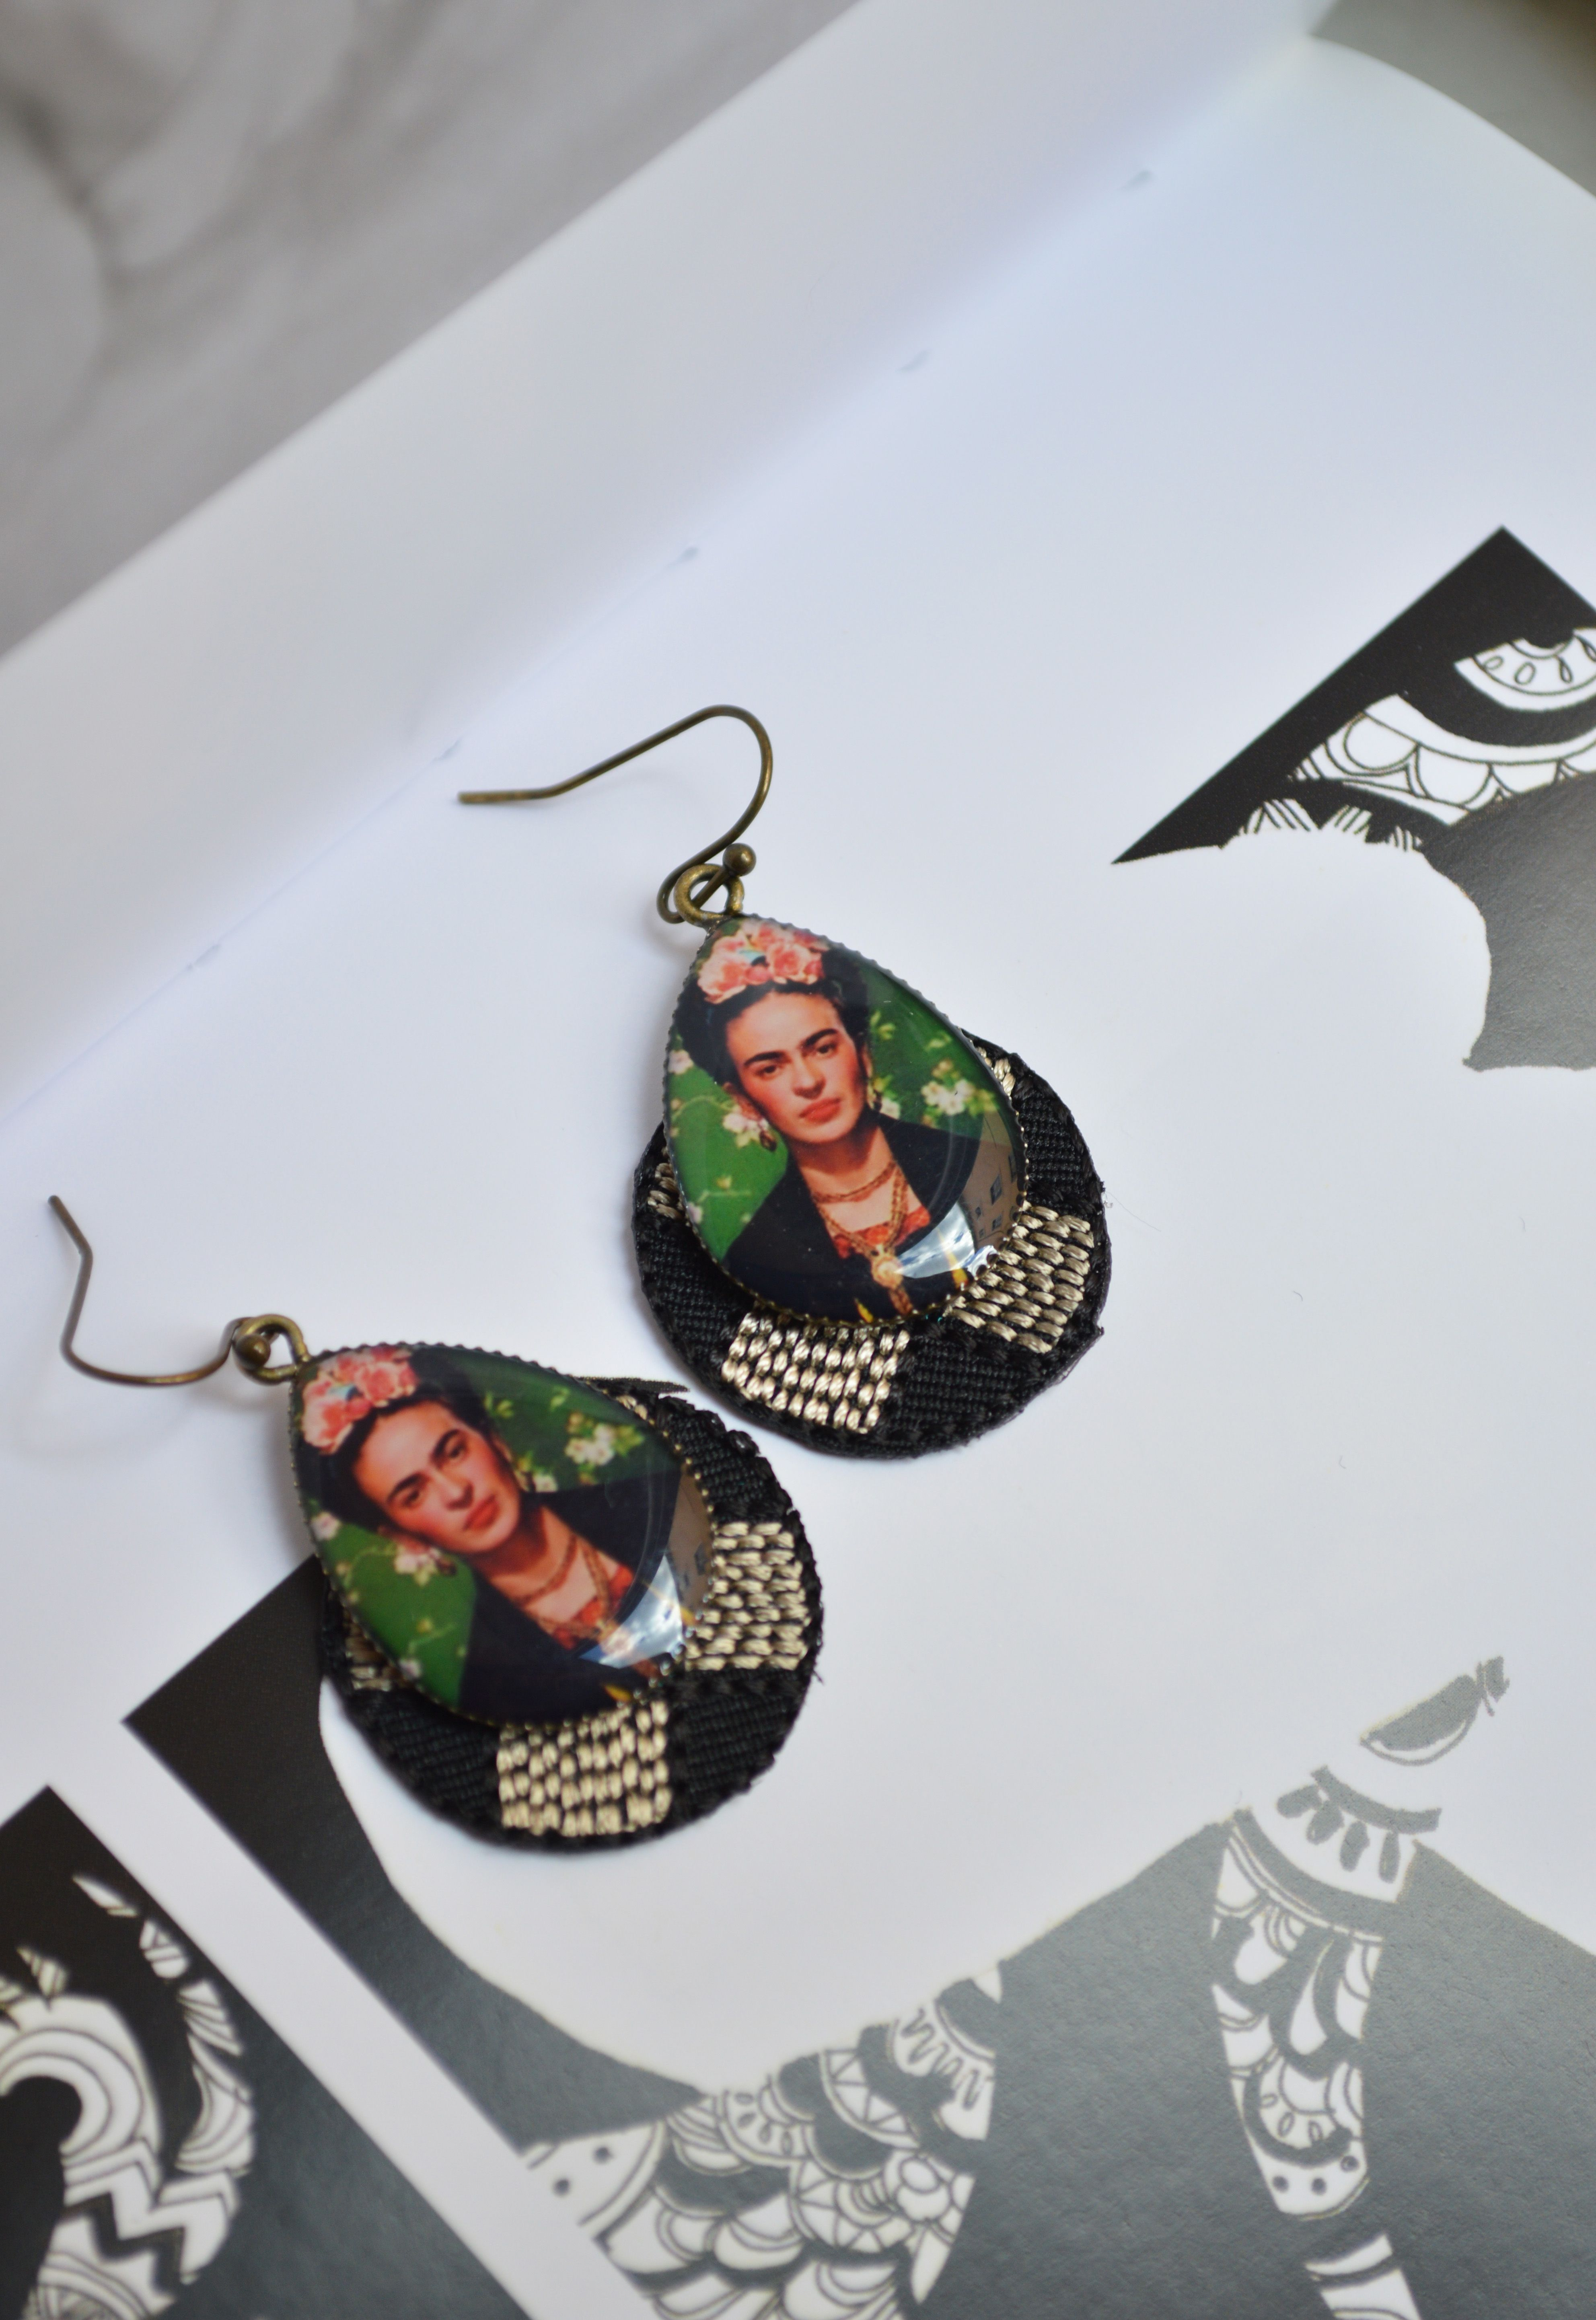 And Frida Earrings EmbroideryMes Kahlo Bijoux Tl1FKJc